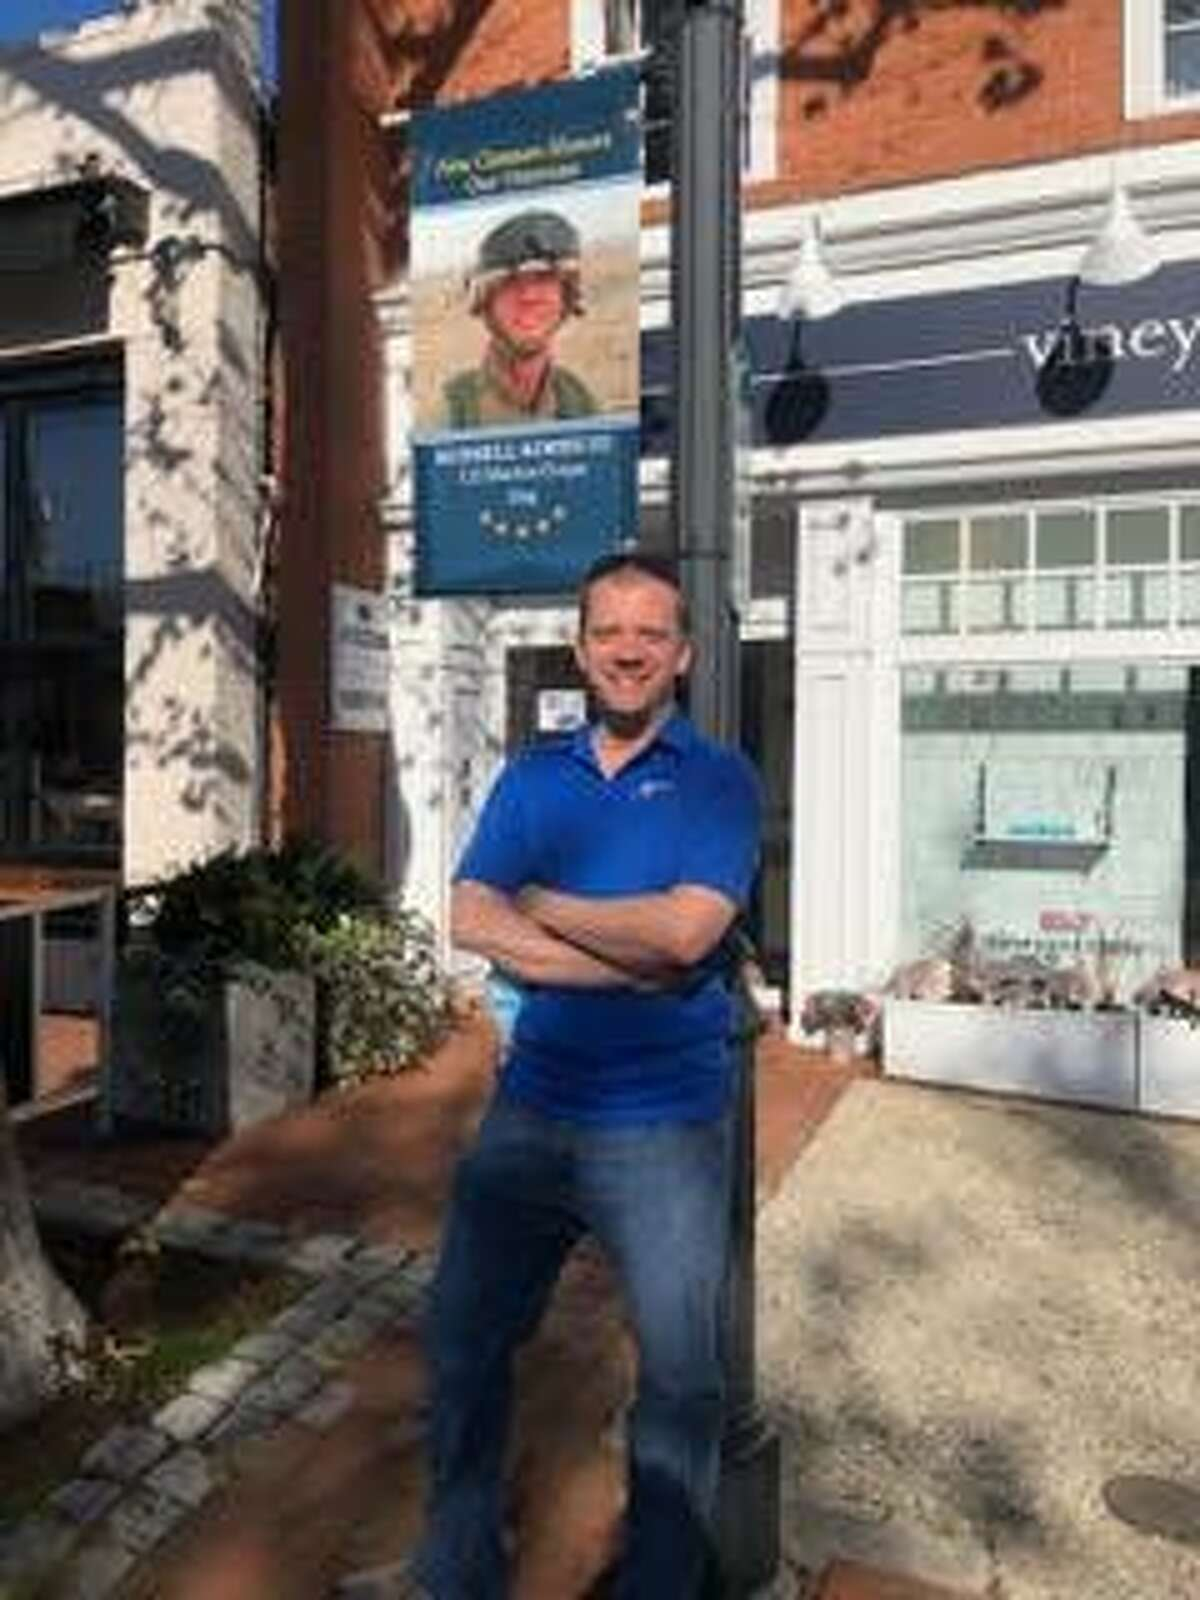 The New Canaan and Darien Moms of Military group had the honor of assisting in the hanging of the Veterans Banners, such as this one, in downtown New Canaan this past week. Veterans of Foreign Wars Post 653 in New Canaan Commander Russell A. Kimes III (pictured) was also in the downtown part of town when the banners were being put up.